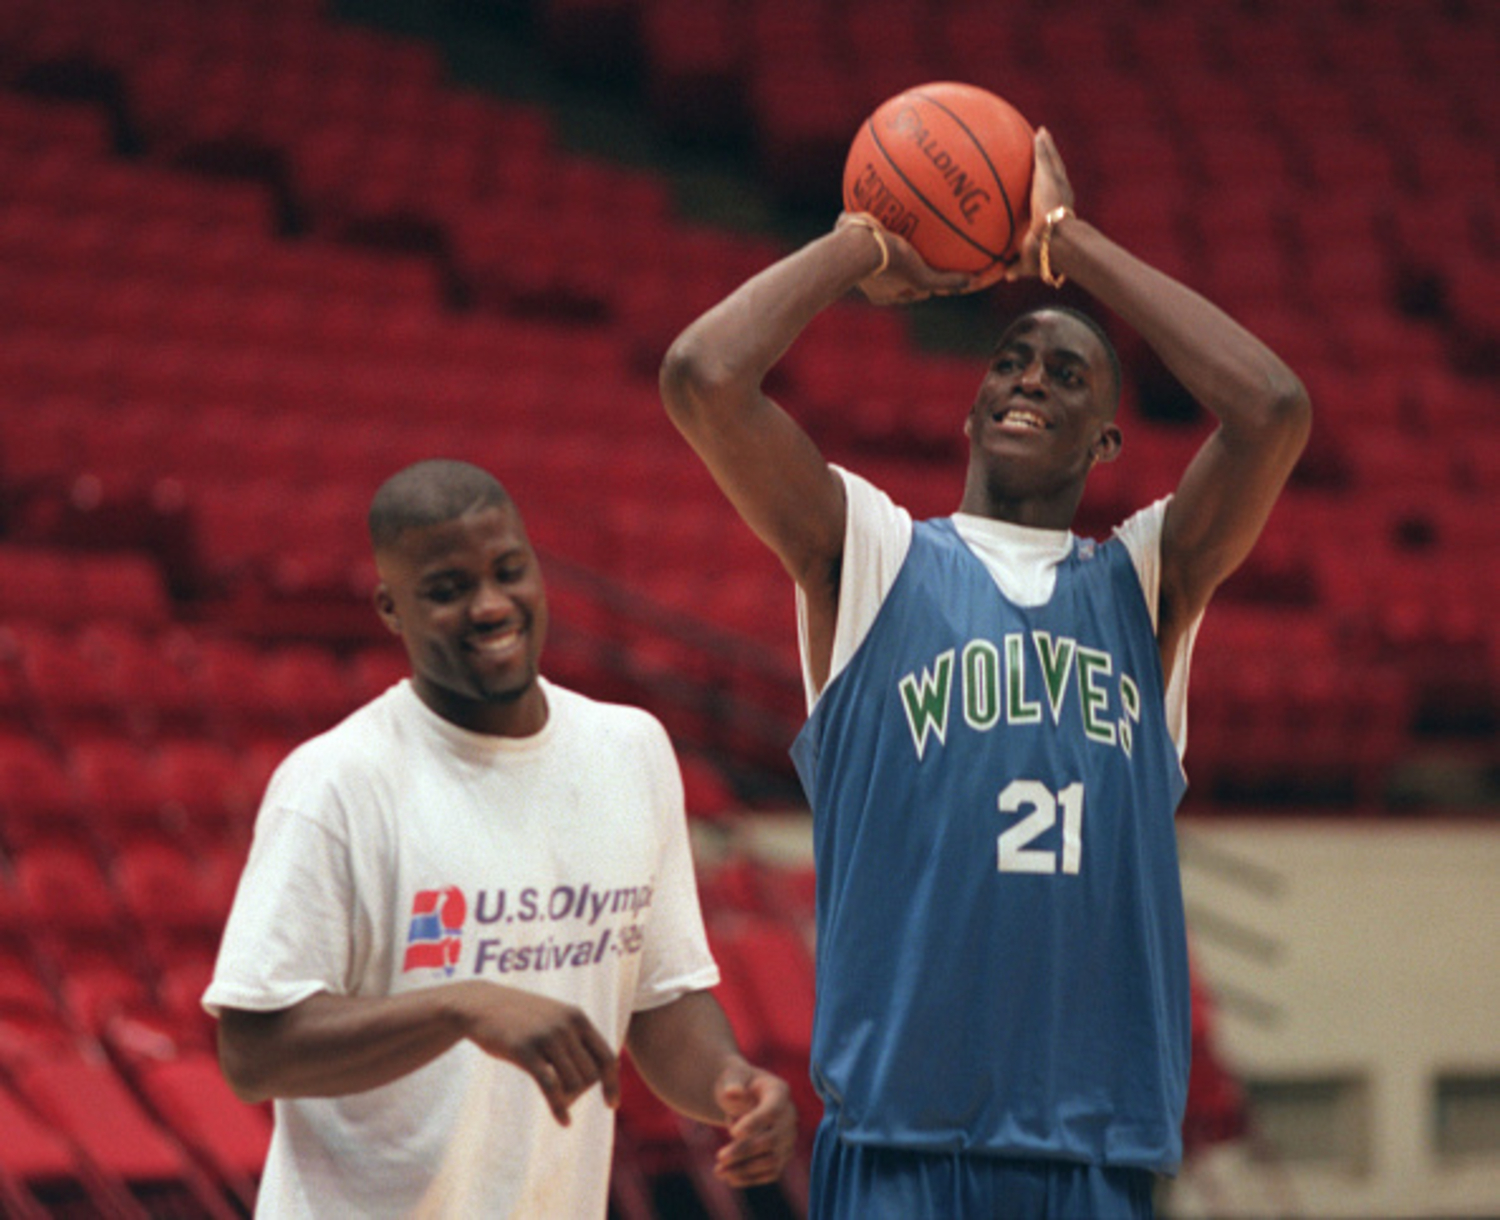 Kevin Garnett made his NBA debut 25 years ago